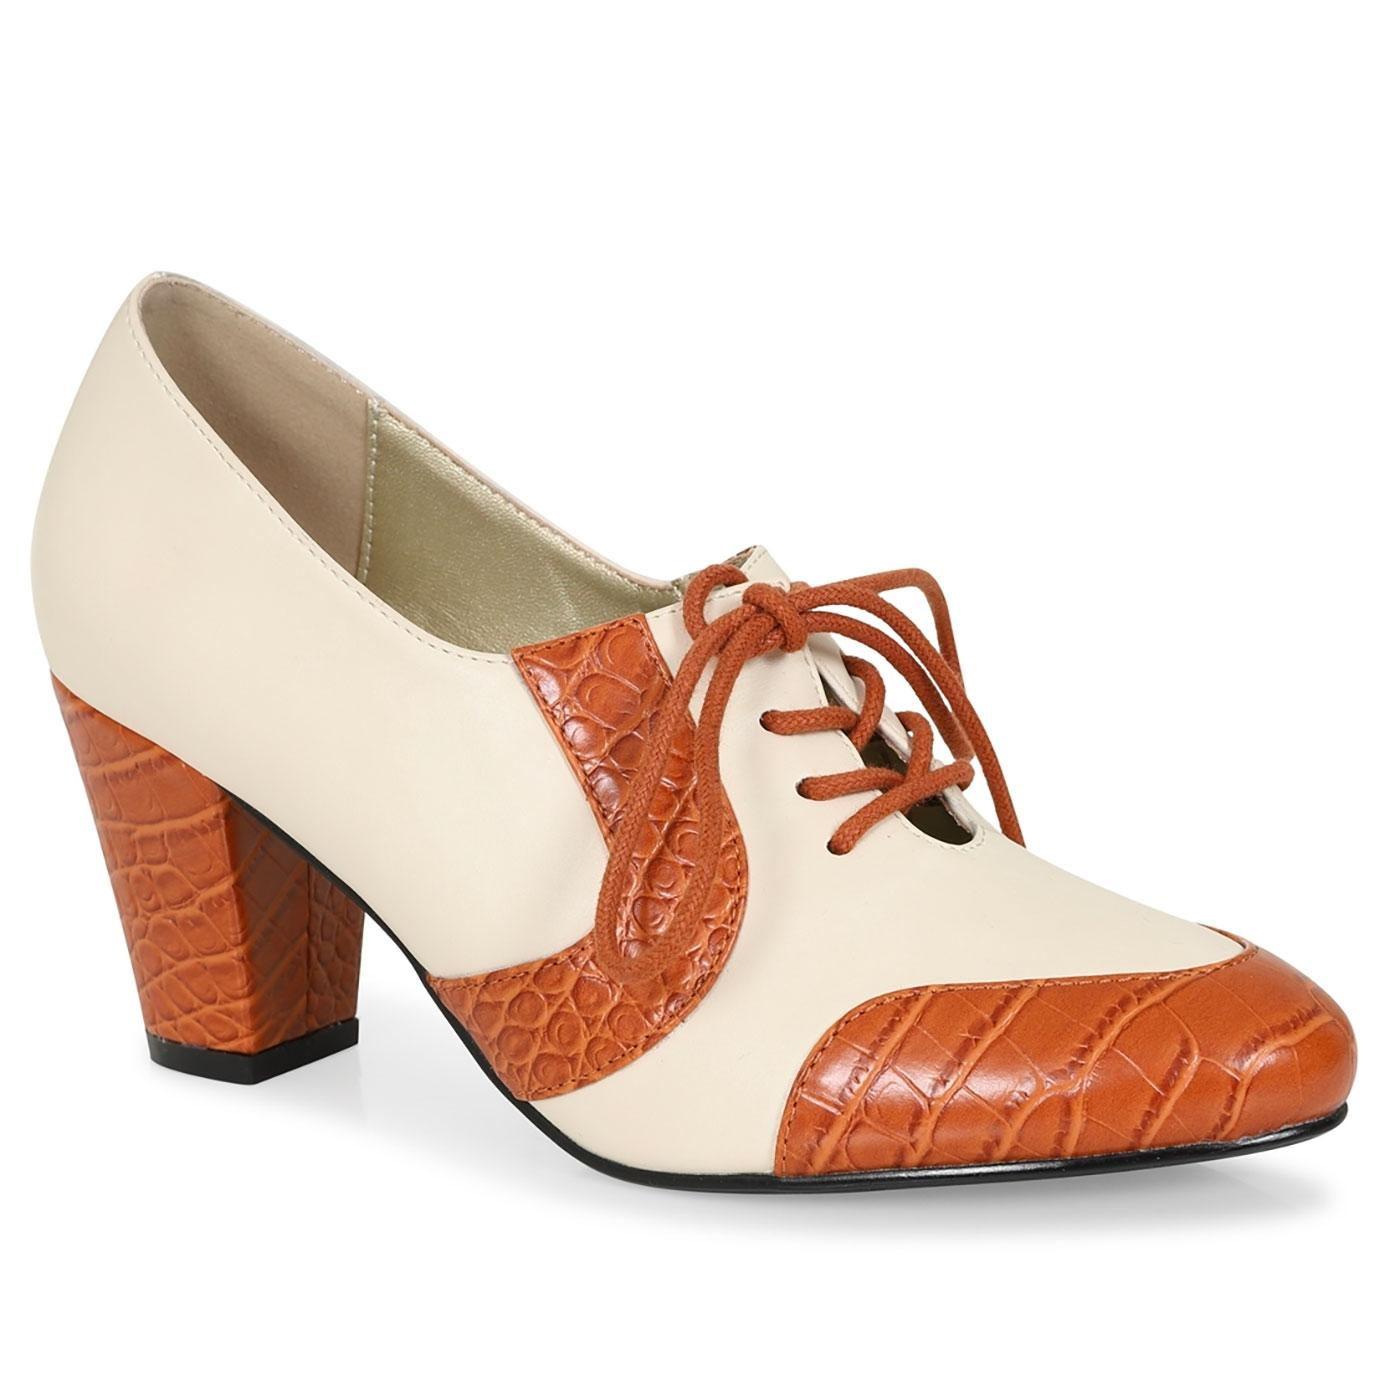 Agnes LULU HUN Retro Vintage 50s Shoes in Ivory